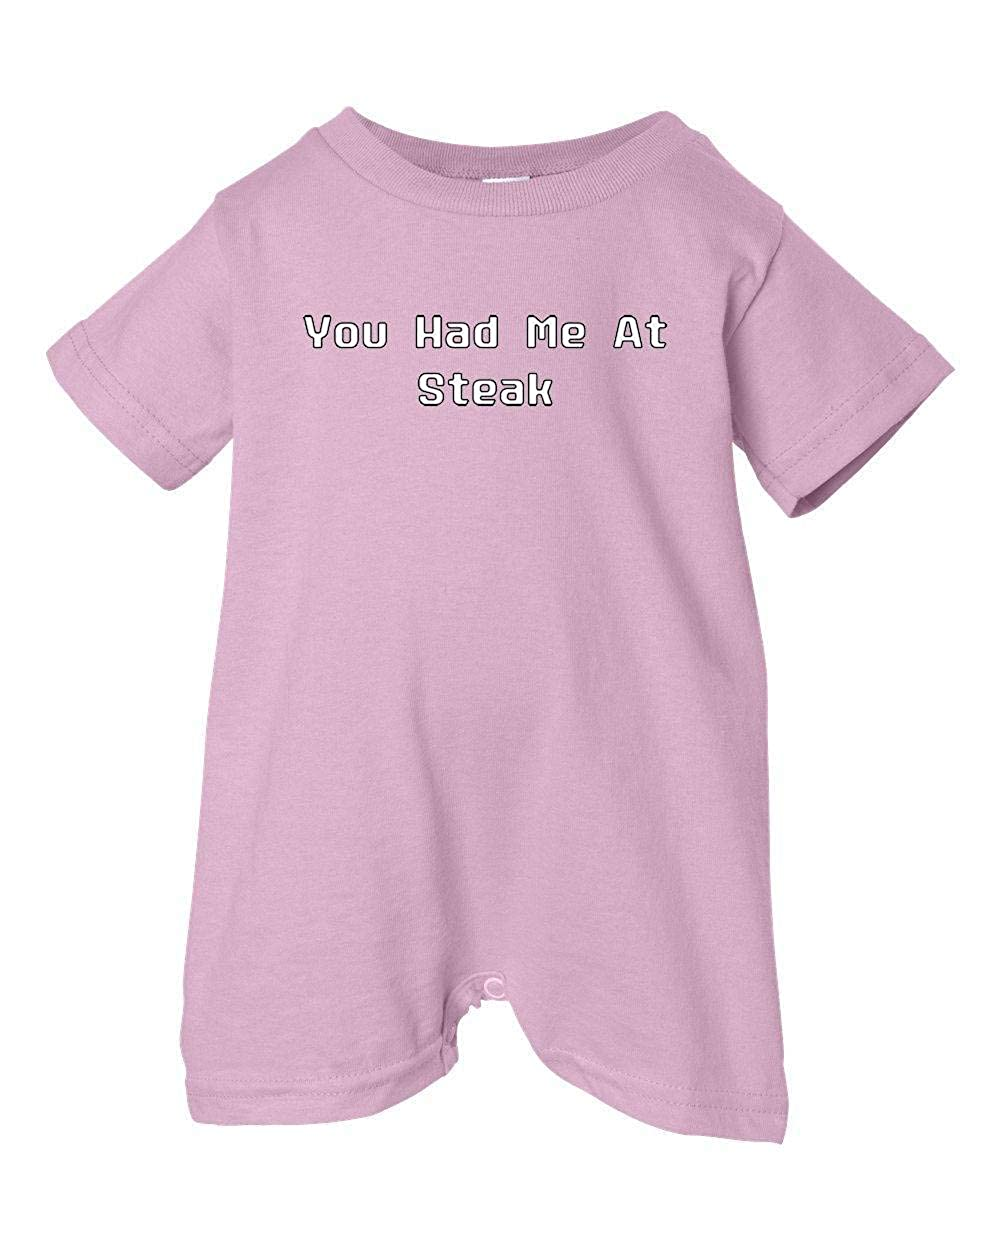 Pink, 6 Months Tasty Threads Unisex Baby You Had Me At Steak T-Shirt Romper